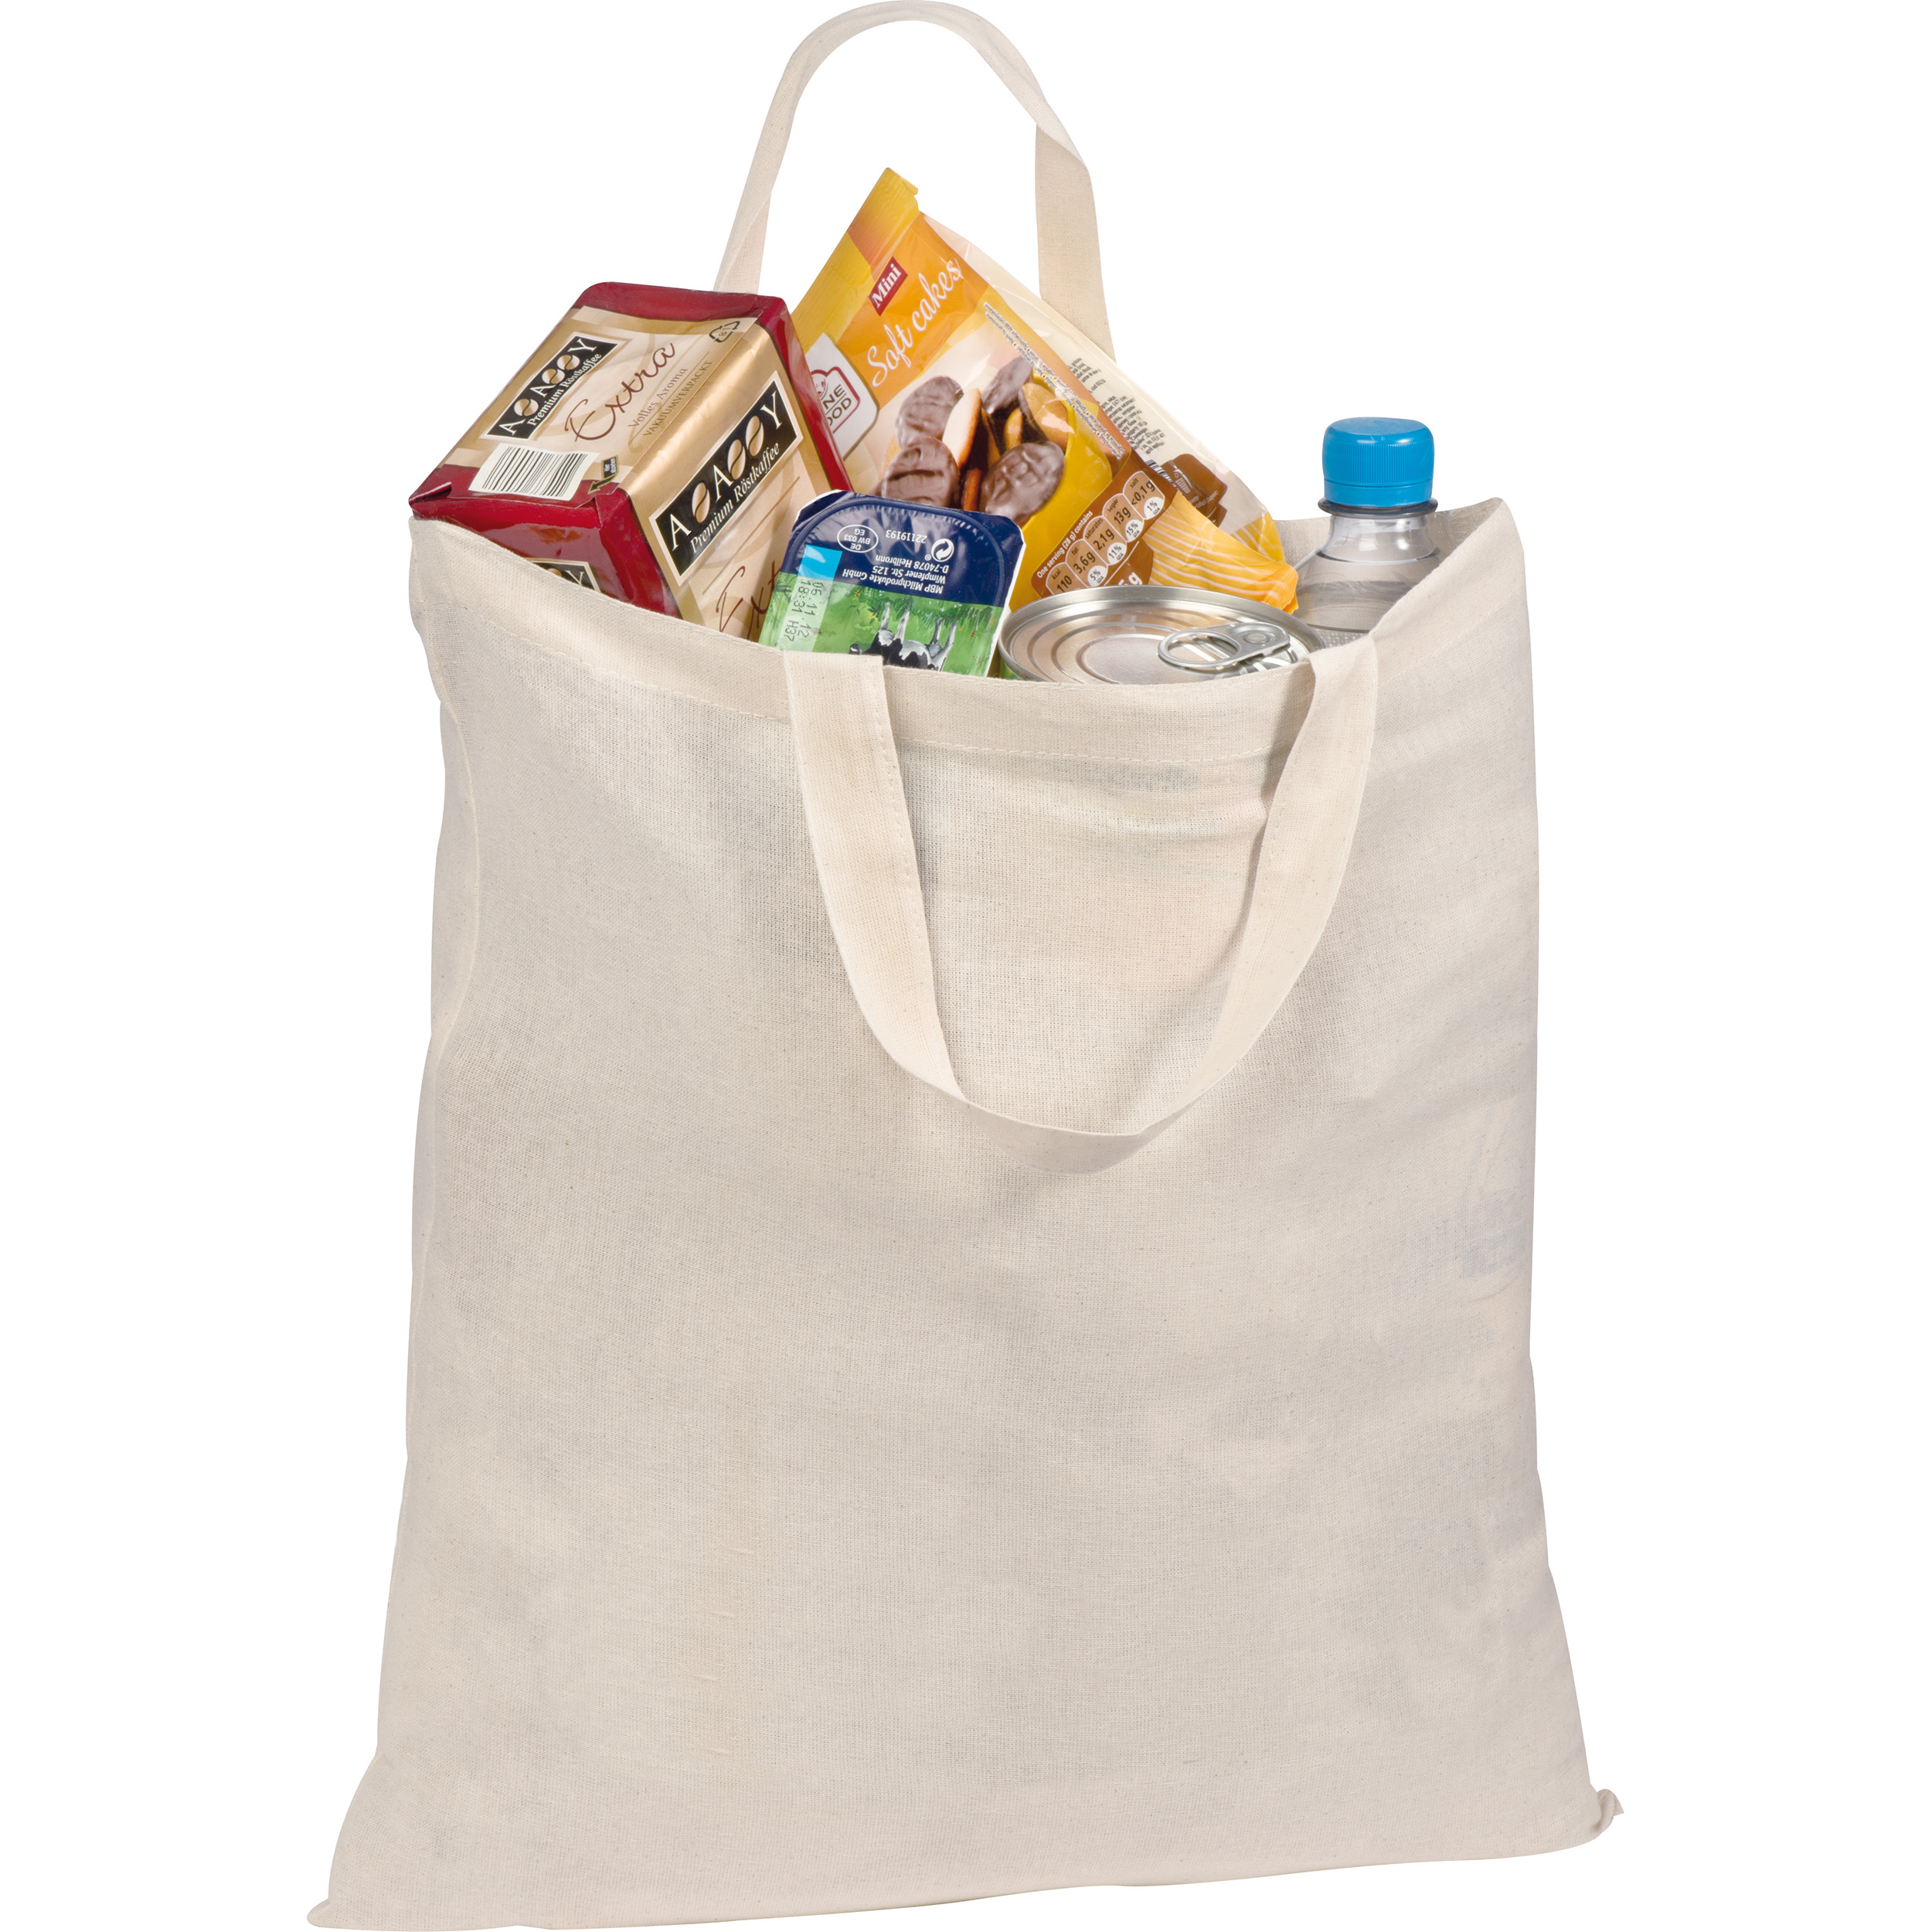 Short-handled shopping bag